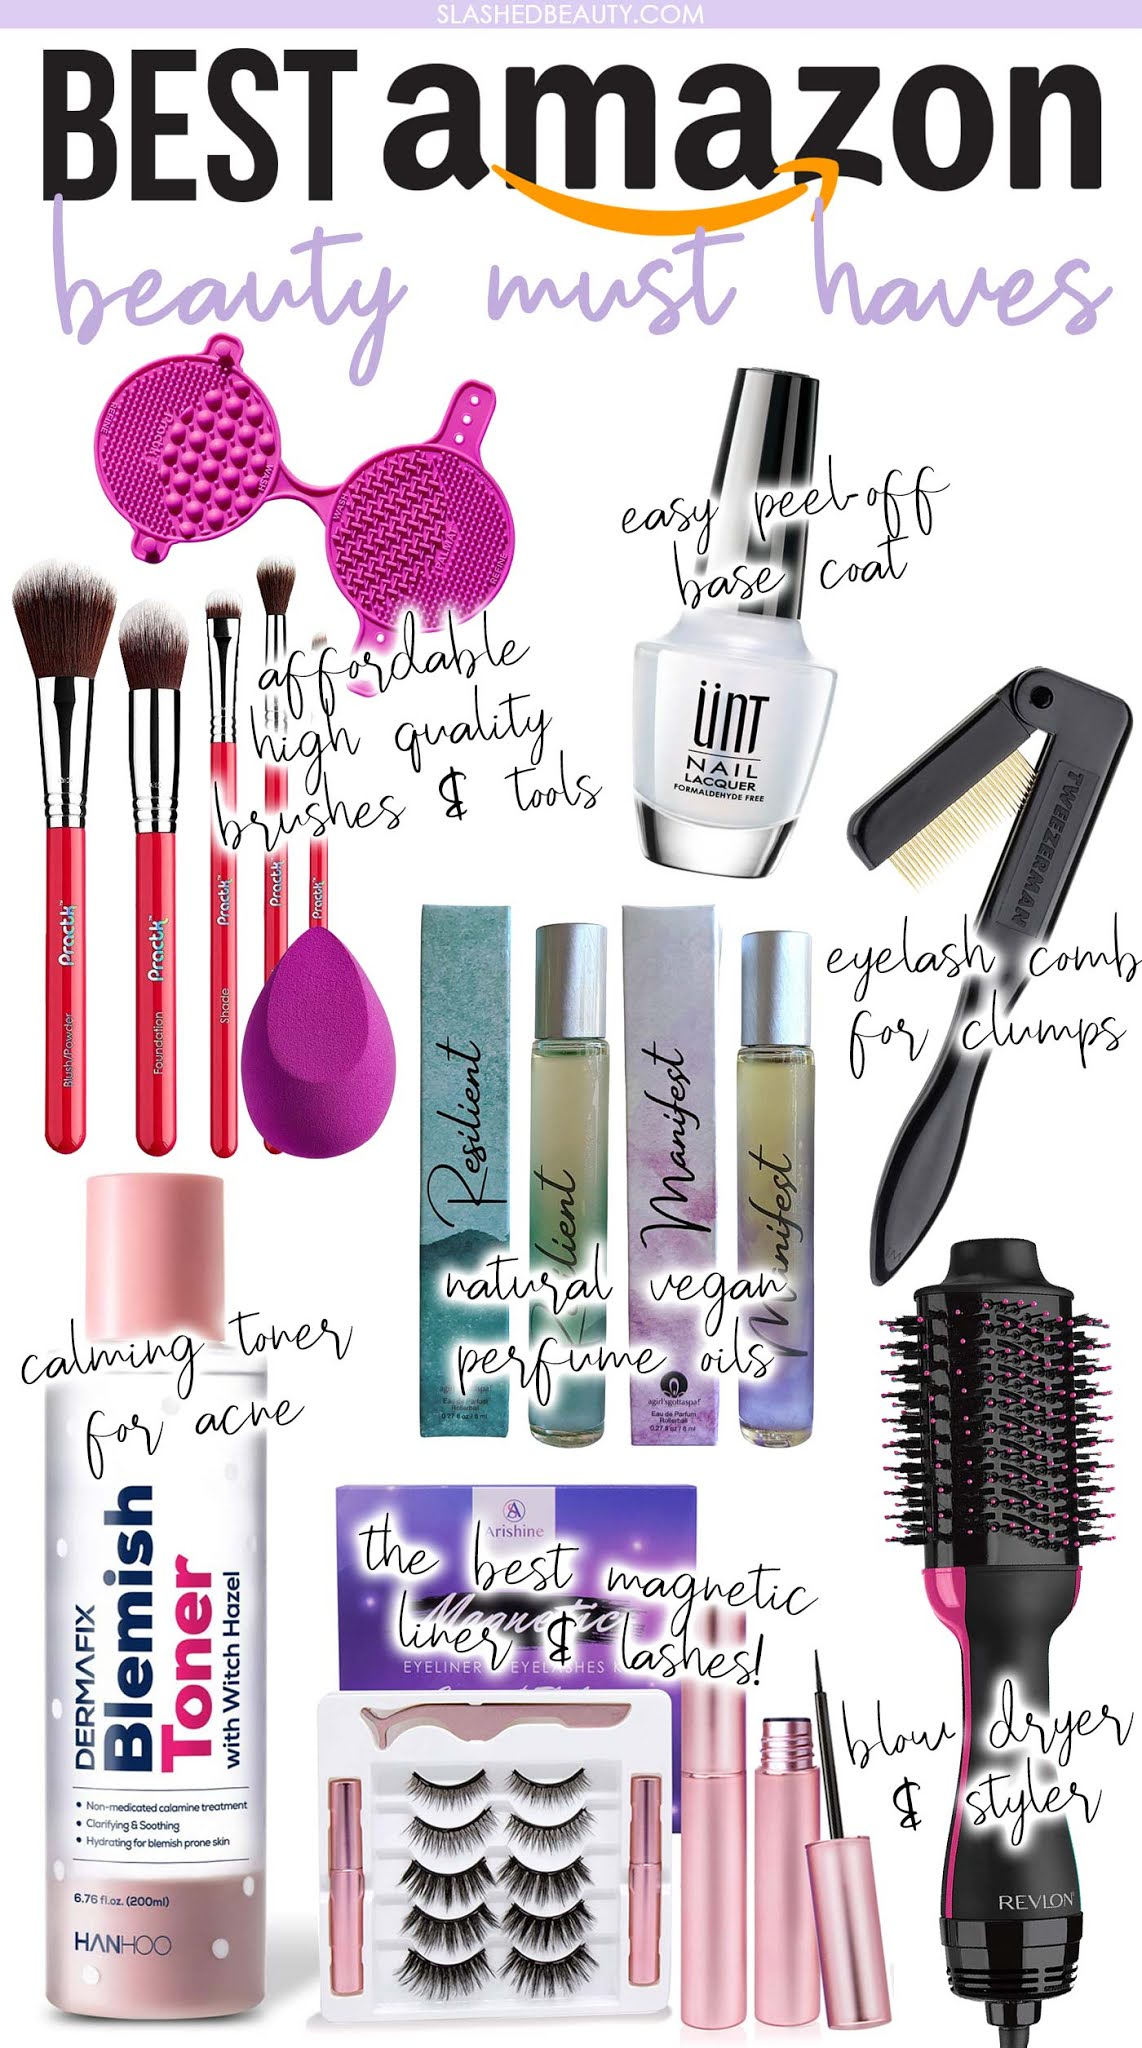 7 Affordable Amazon Beauty Products